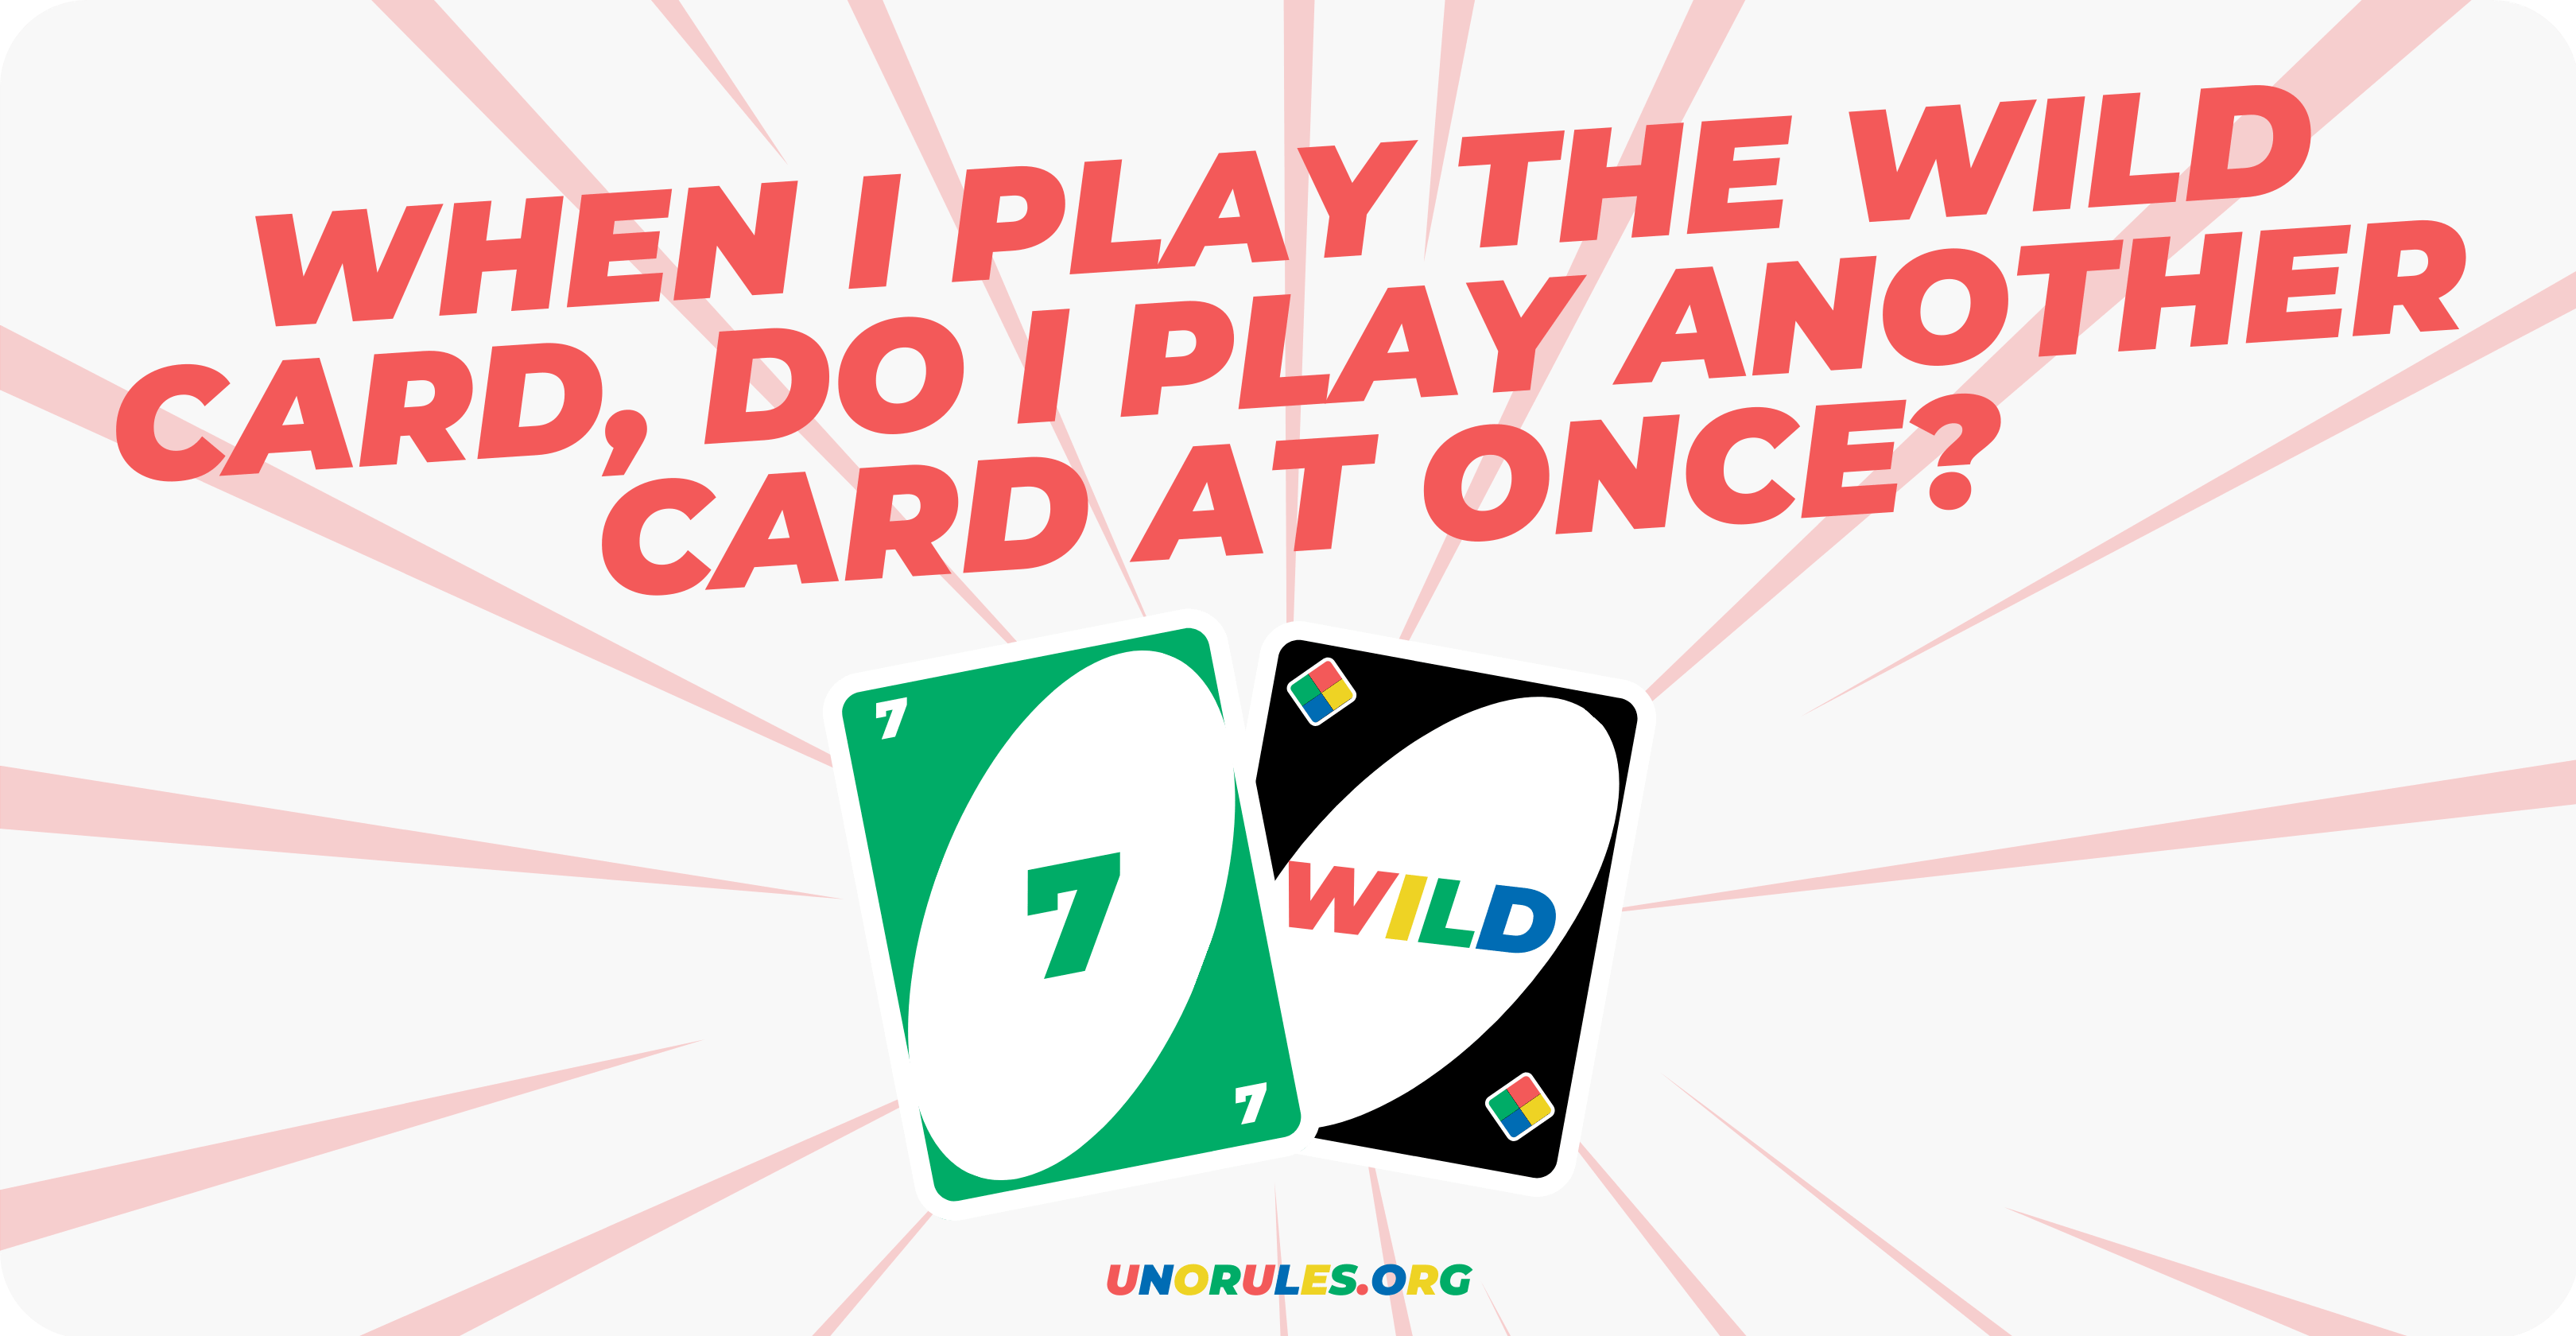 When I play the Wild card, do I play another card at once